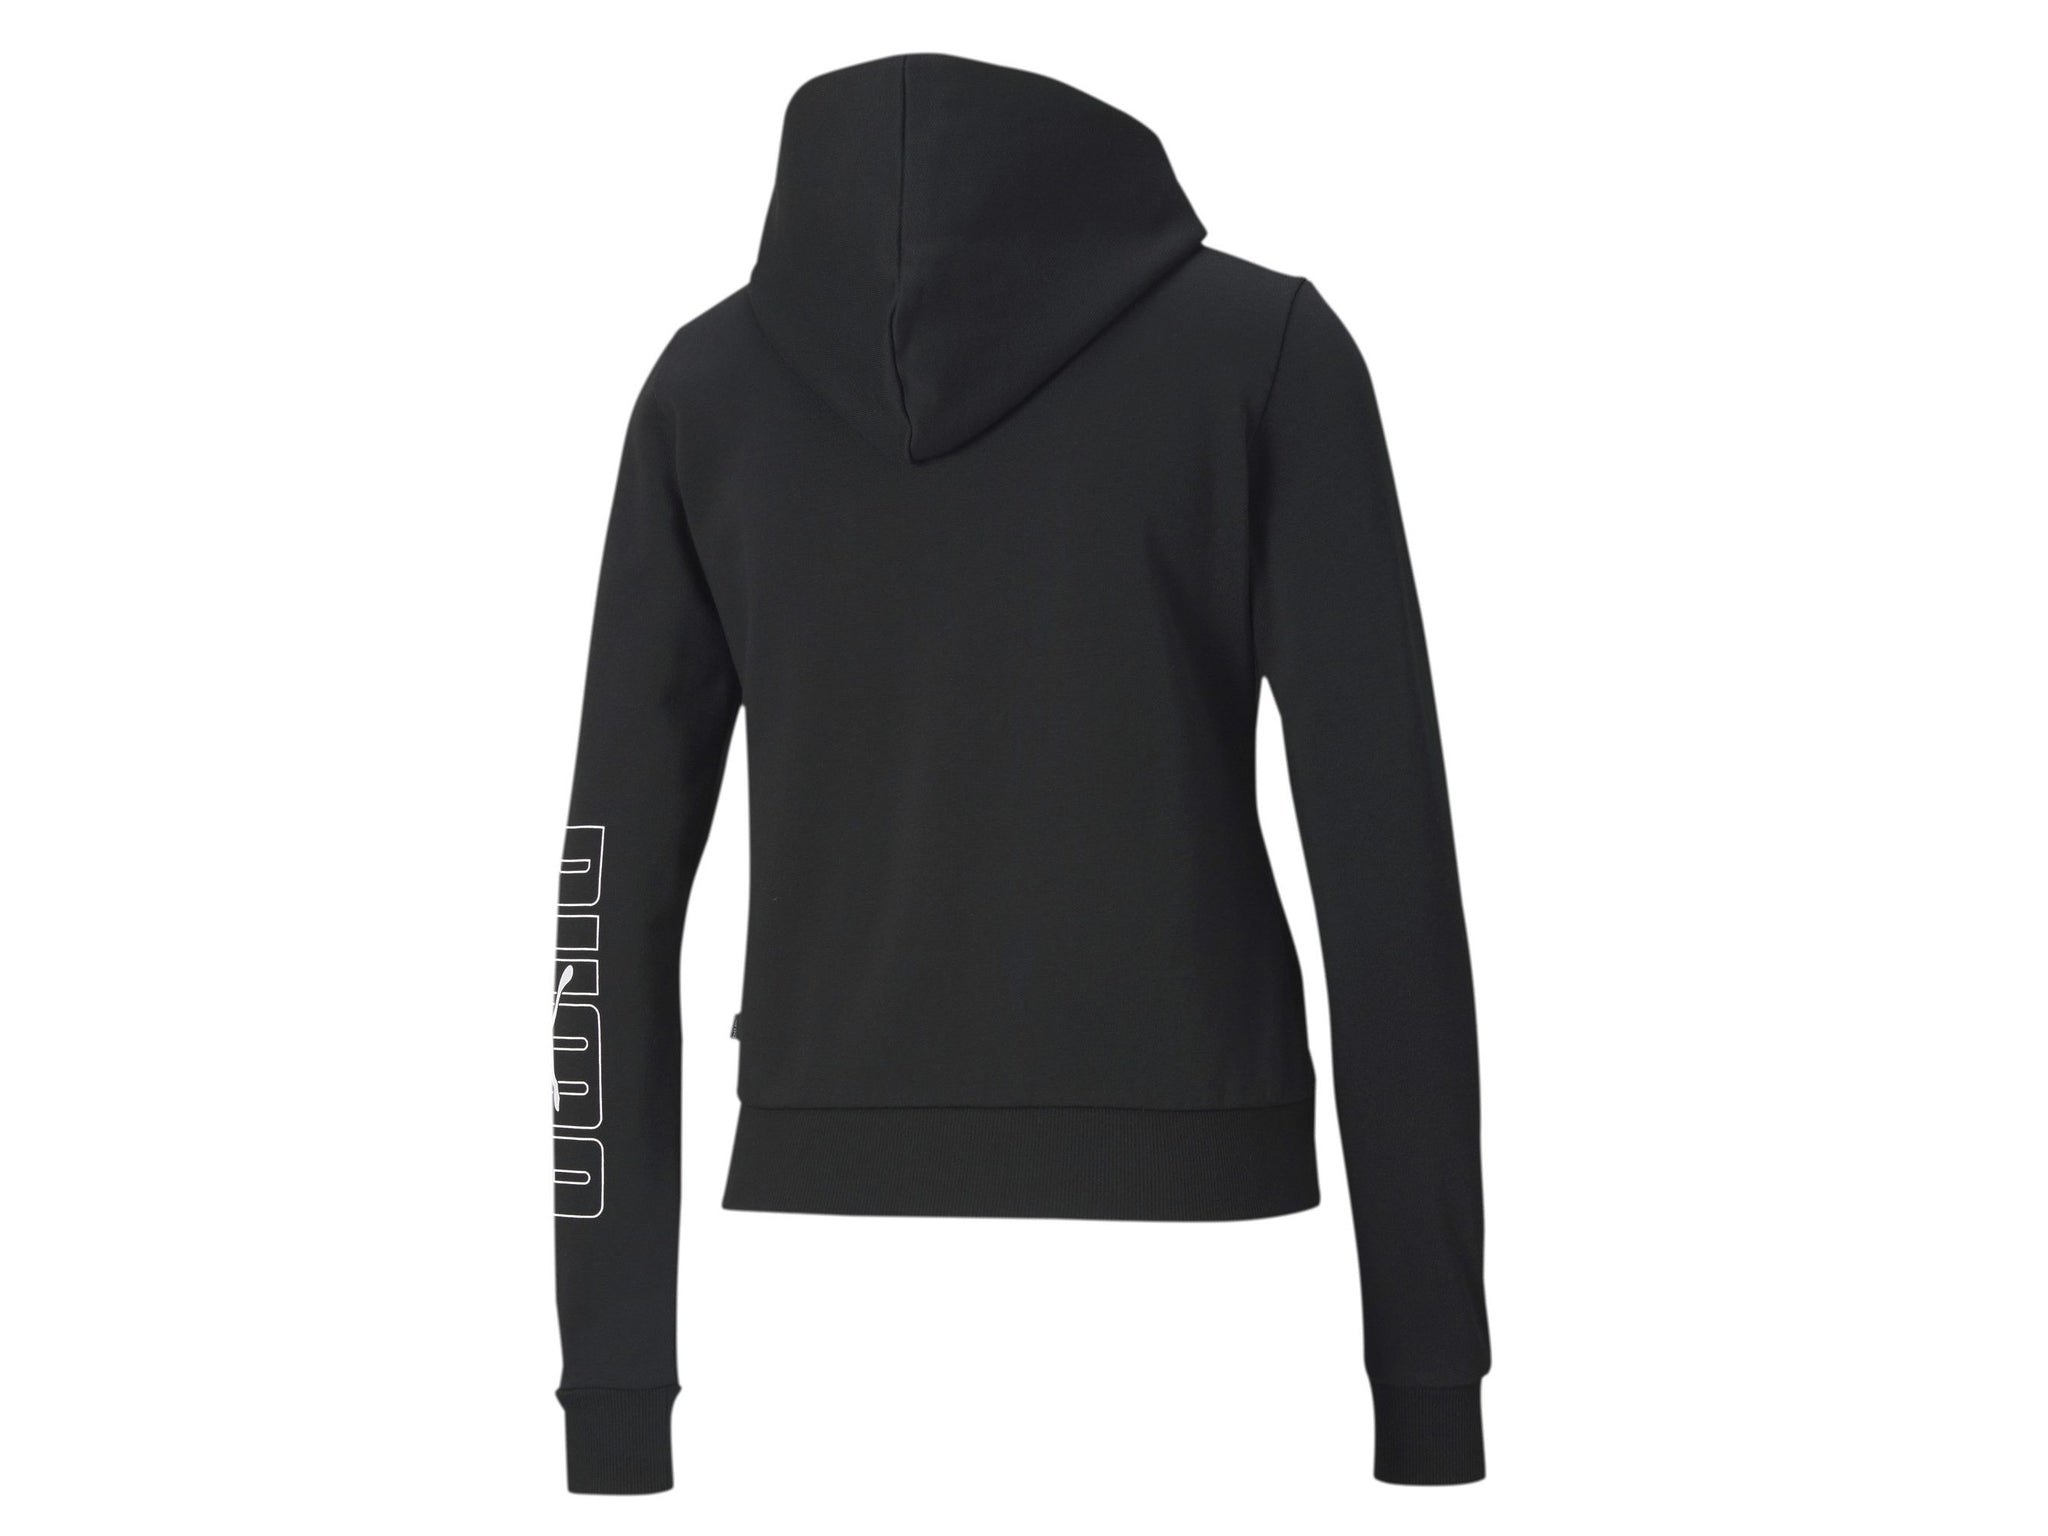 PUMA Rebel Full Zip Hoodie Felpa Donna Black 583567 01